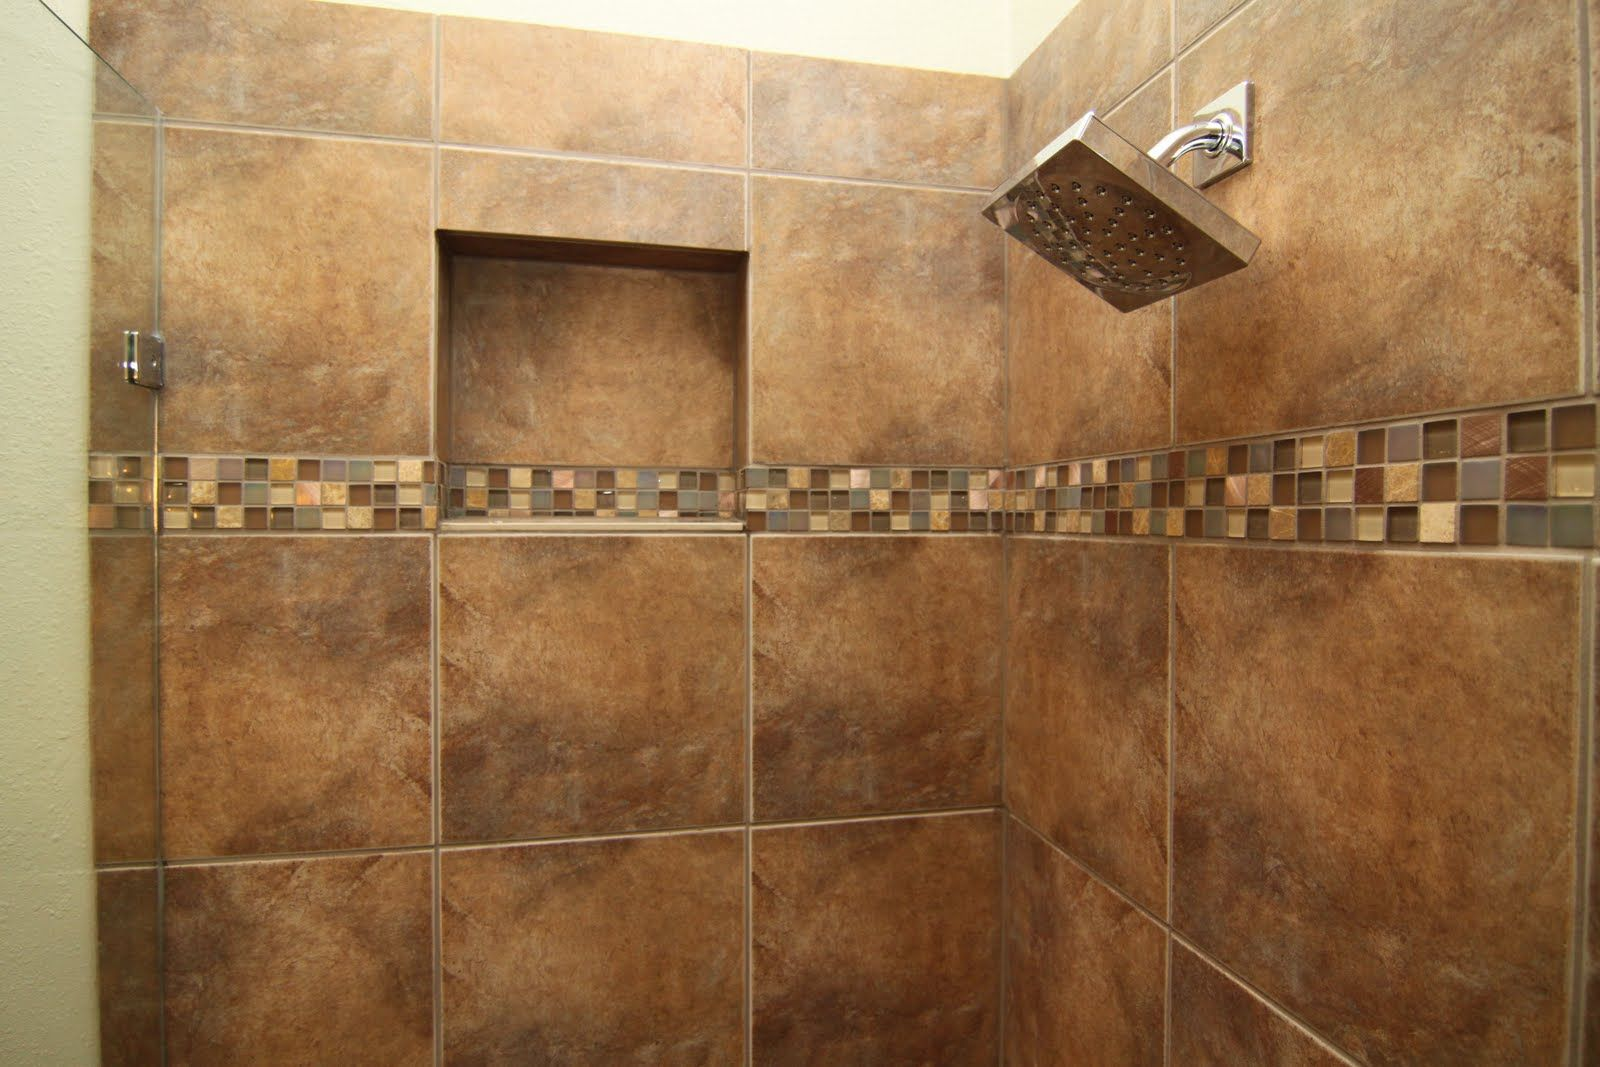 The Coollooking Shower Fixture Was Added To Compliment The Tub Amusing Austin Tx Bathroom Remodeling Design Inspiration